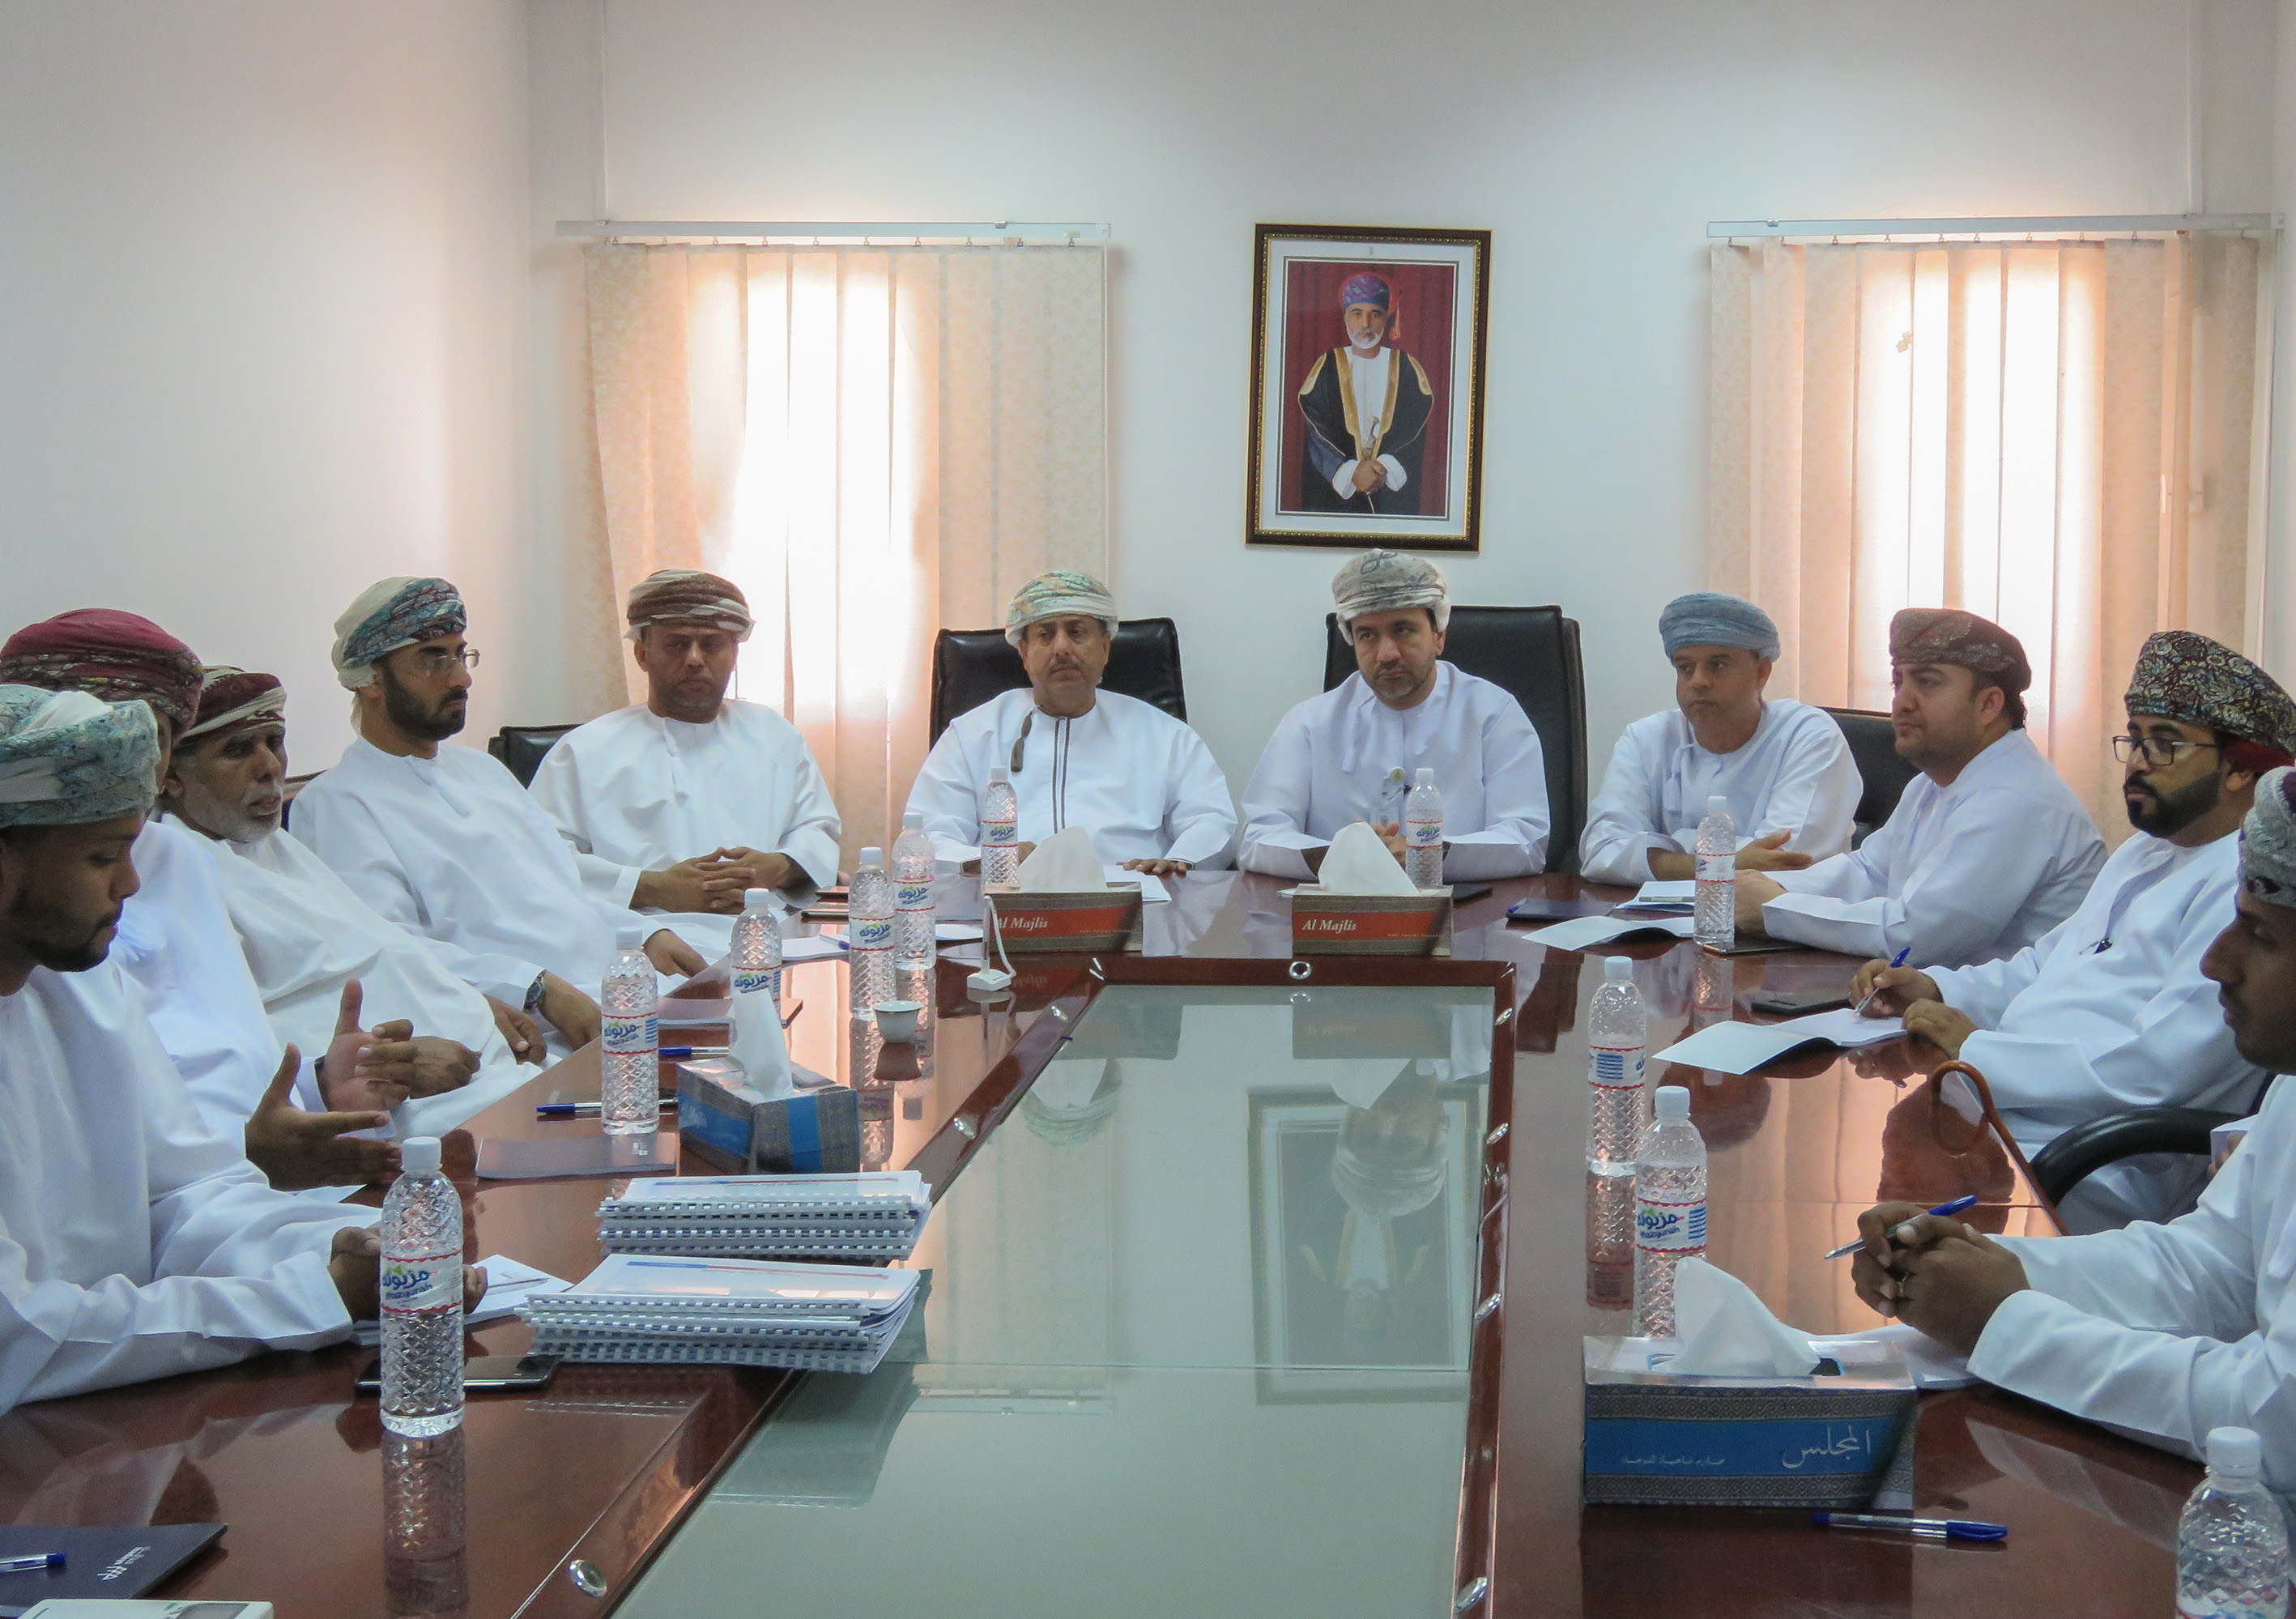 Madayn conducts Omanisation training workshops for companies in Dhofar